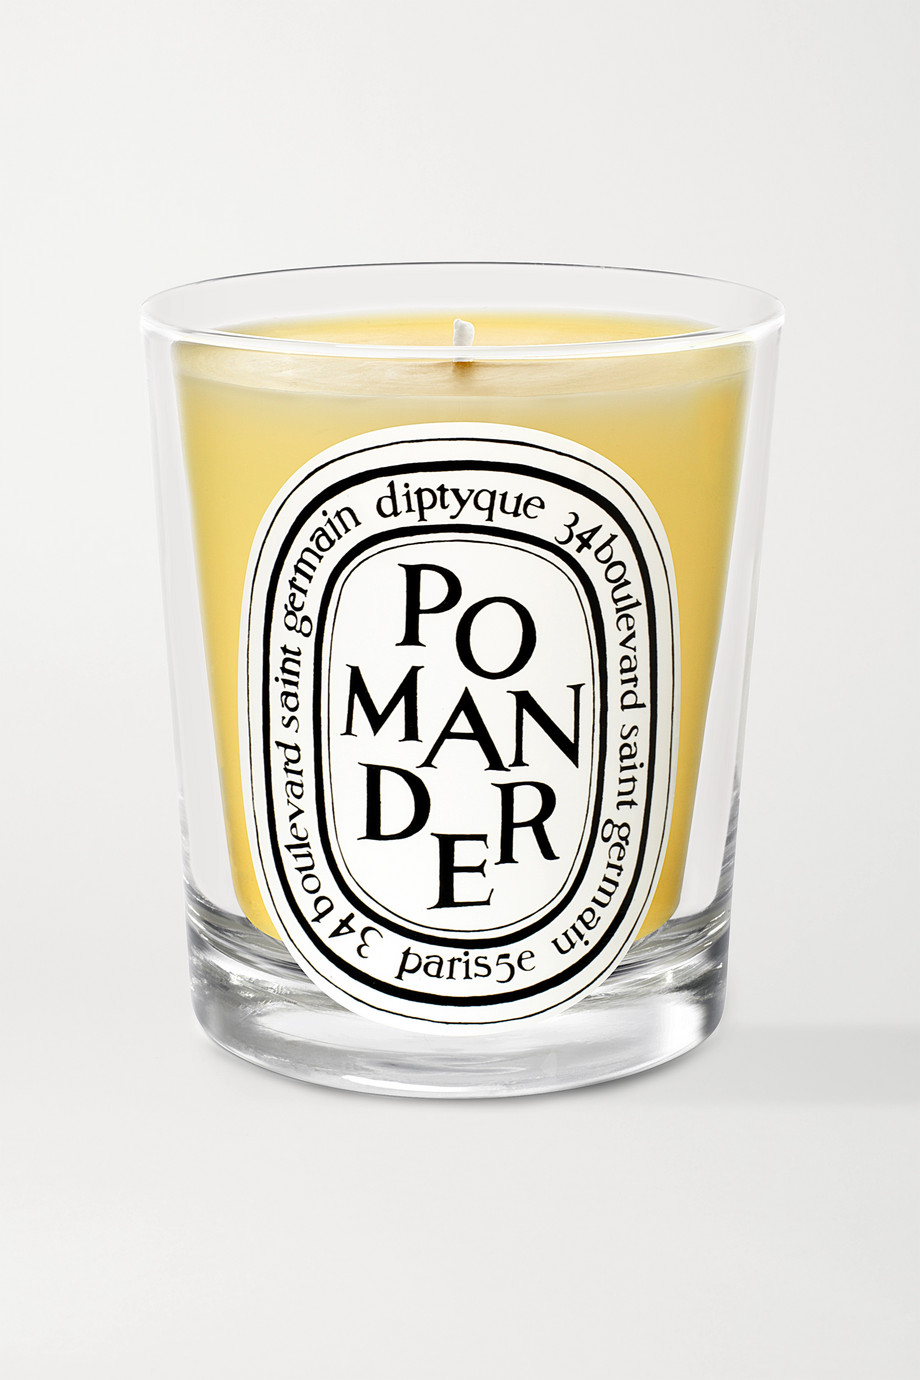 Diptyque Pomander scented candle, 190g